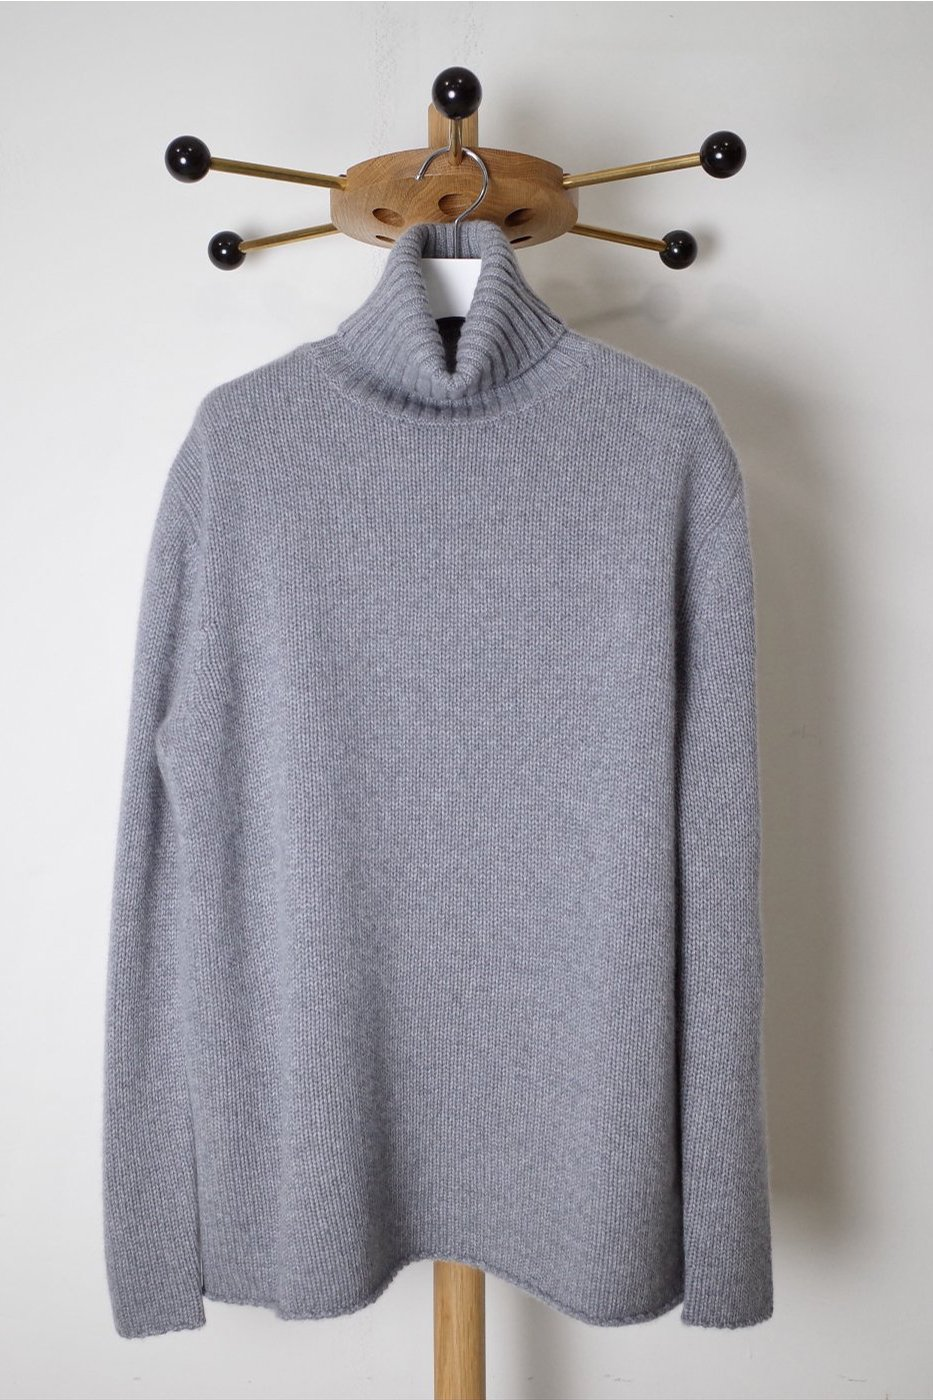 PICEA(ピセア) -BABY CASHMERE HIGH NECK-GRAY-WOMEN'S